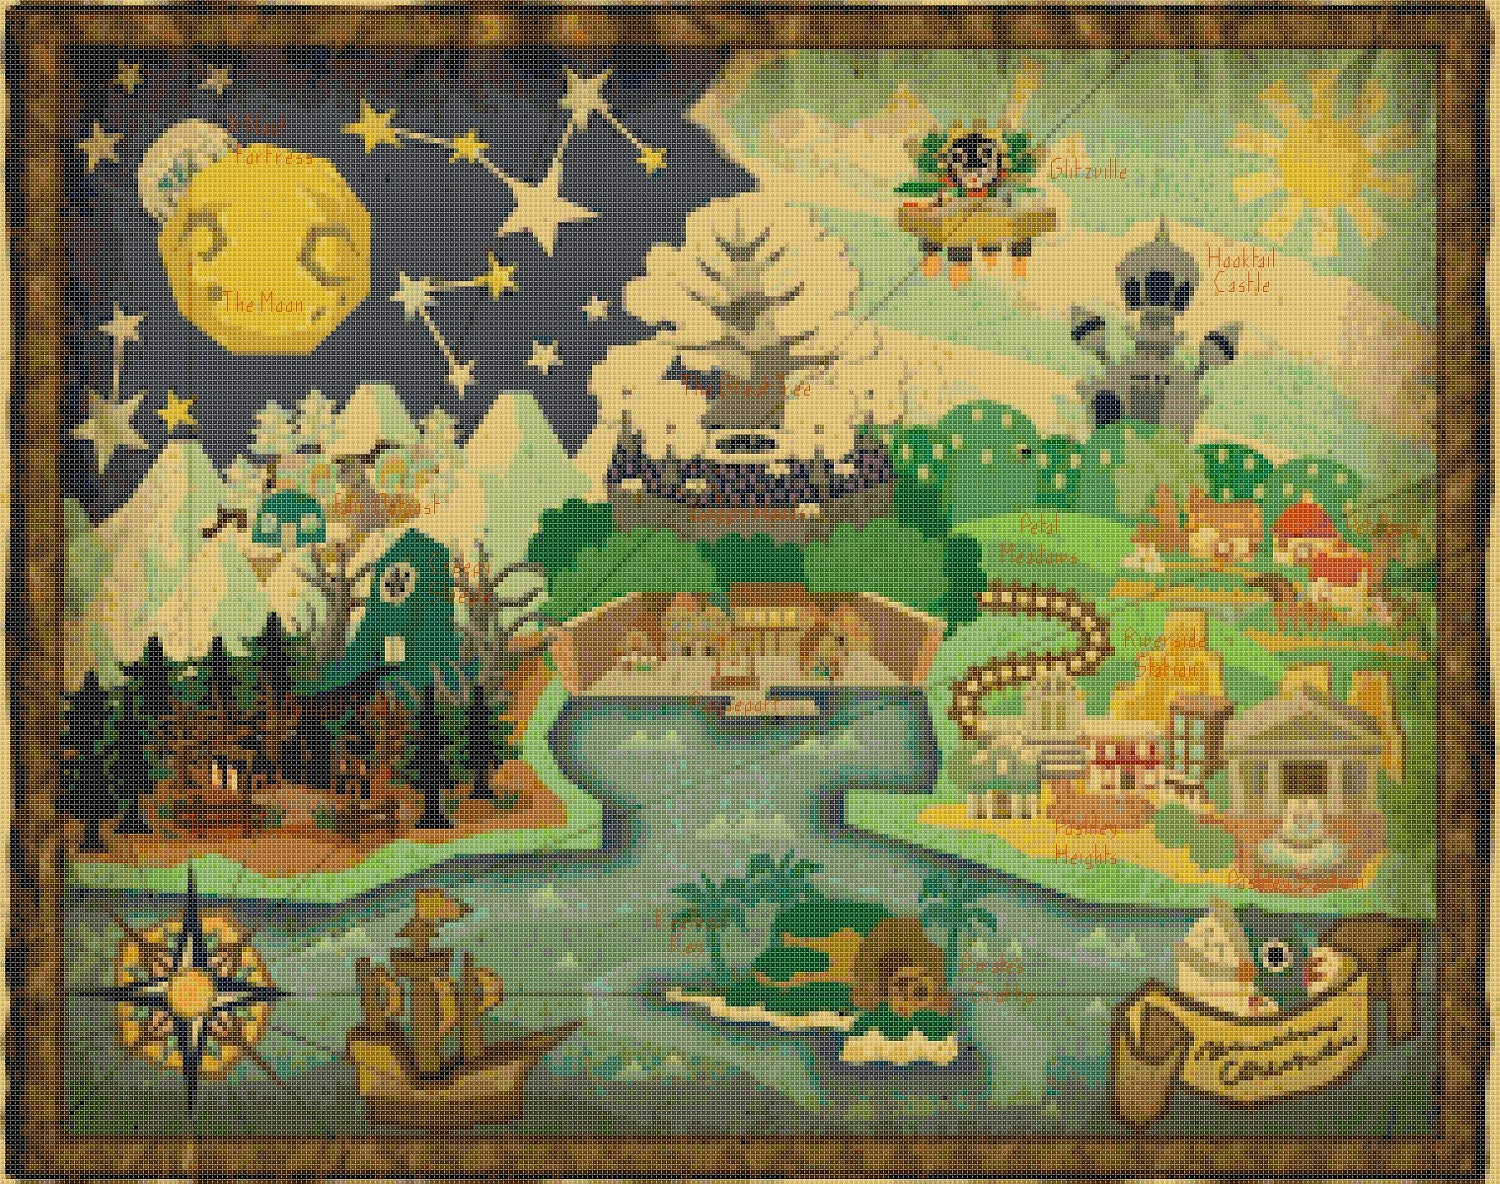 Paper mario the thousand year door world map by servostitches for 1000 year door